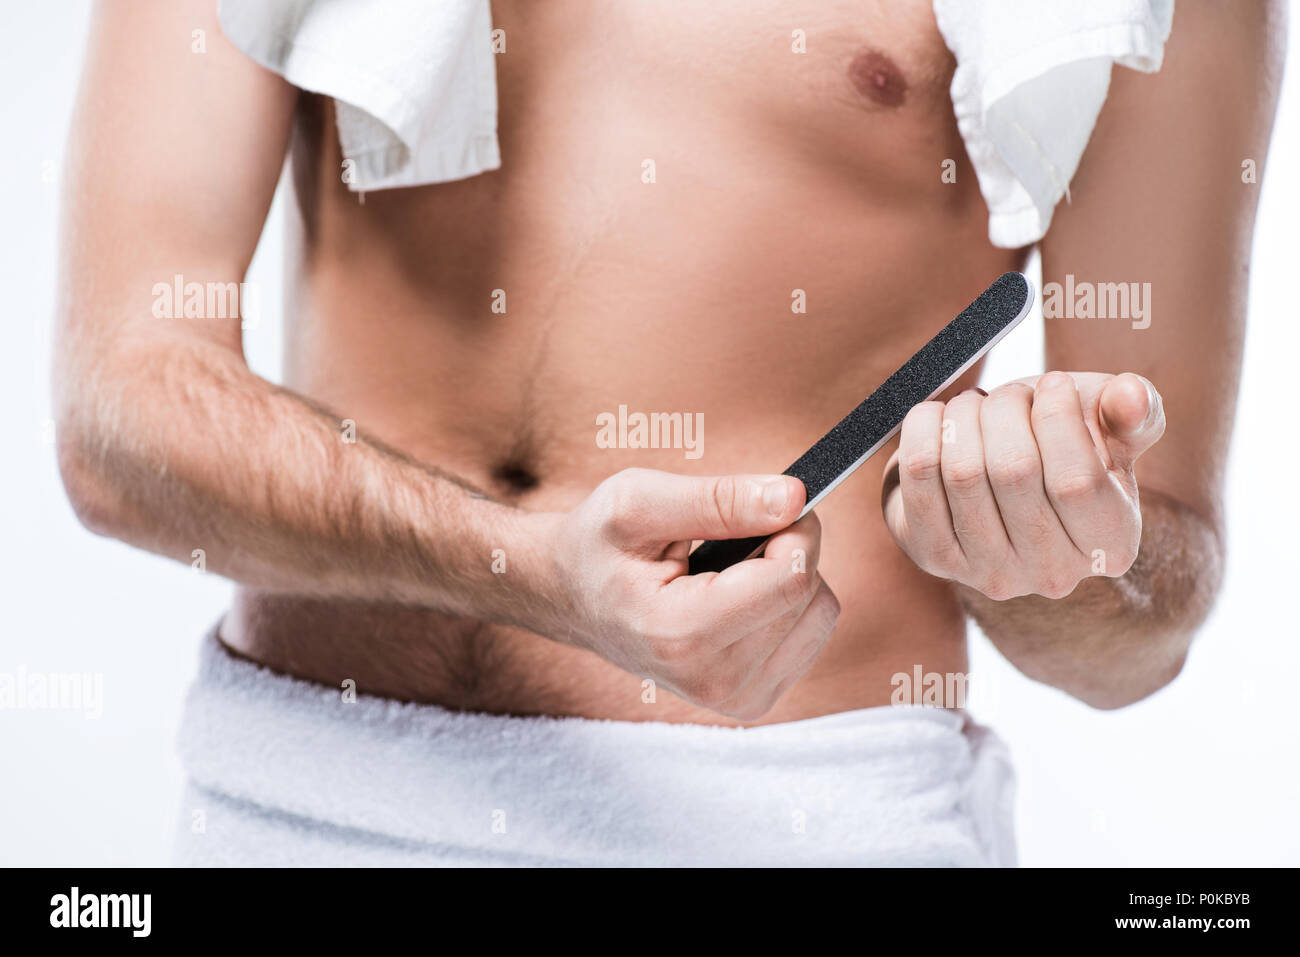 Midsection of  man with bath towel on shoulders and around waist holding nail file in hand,  isolated on white - Stock Image